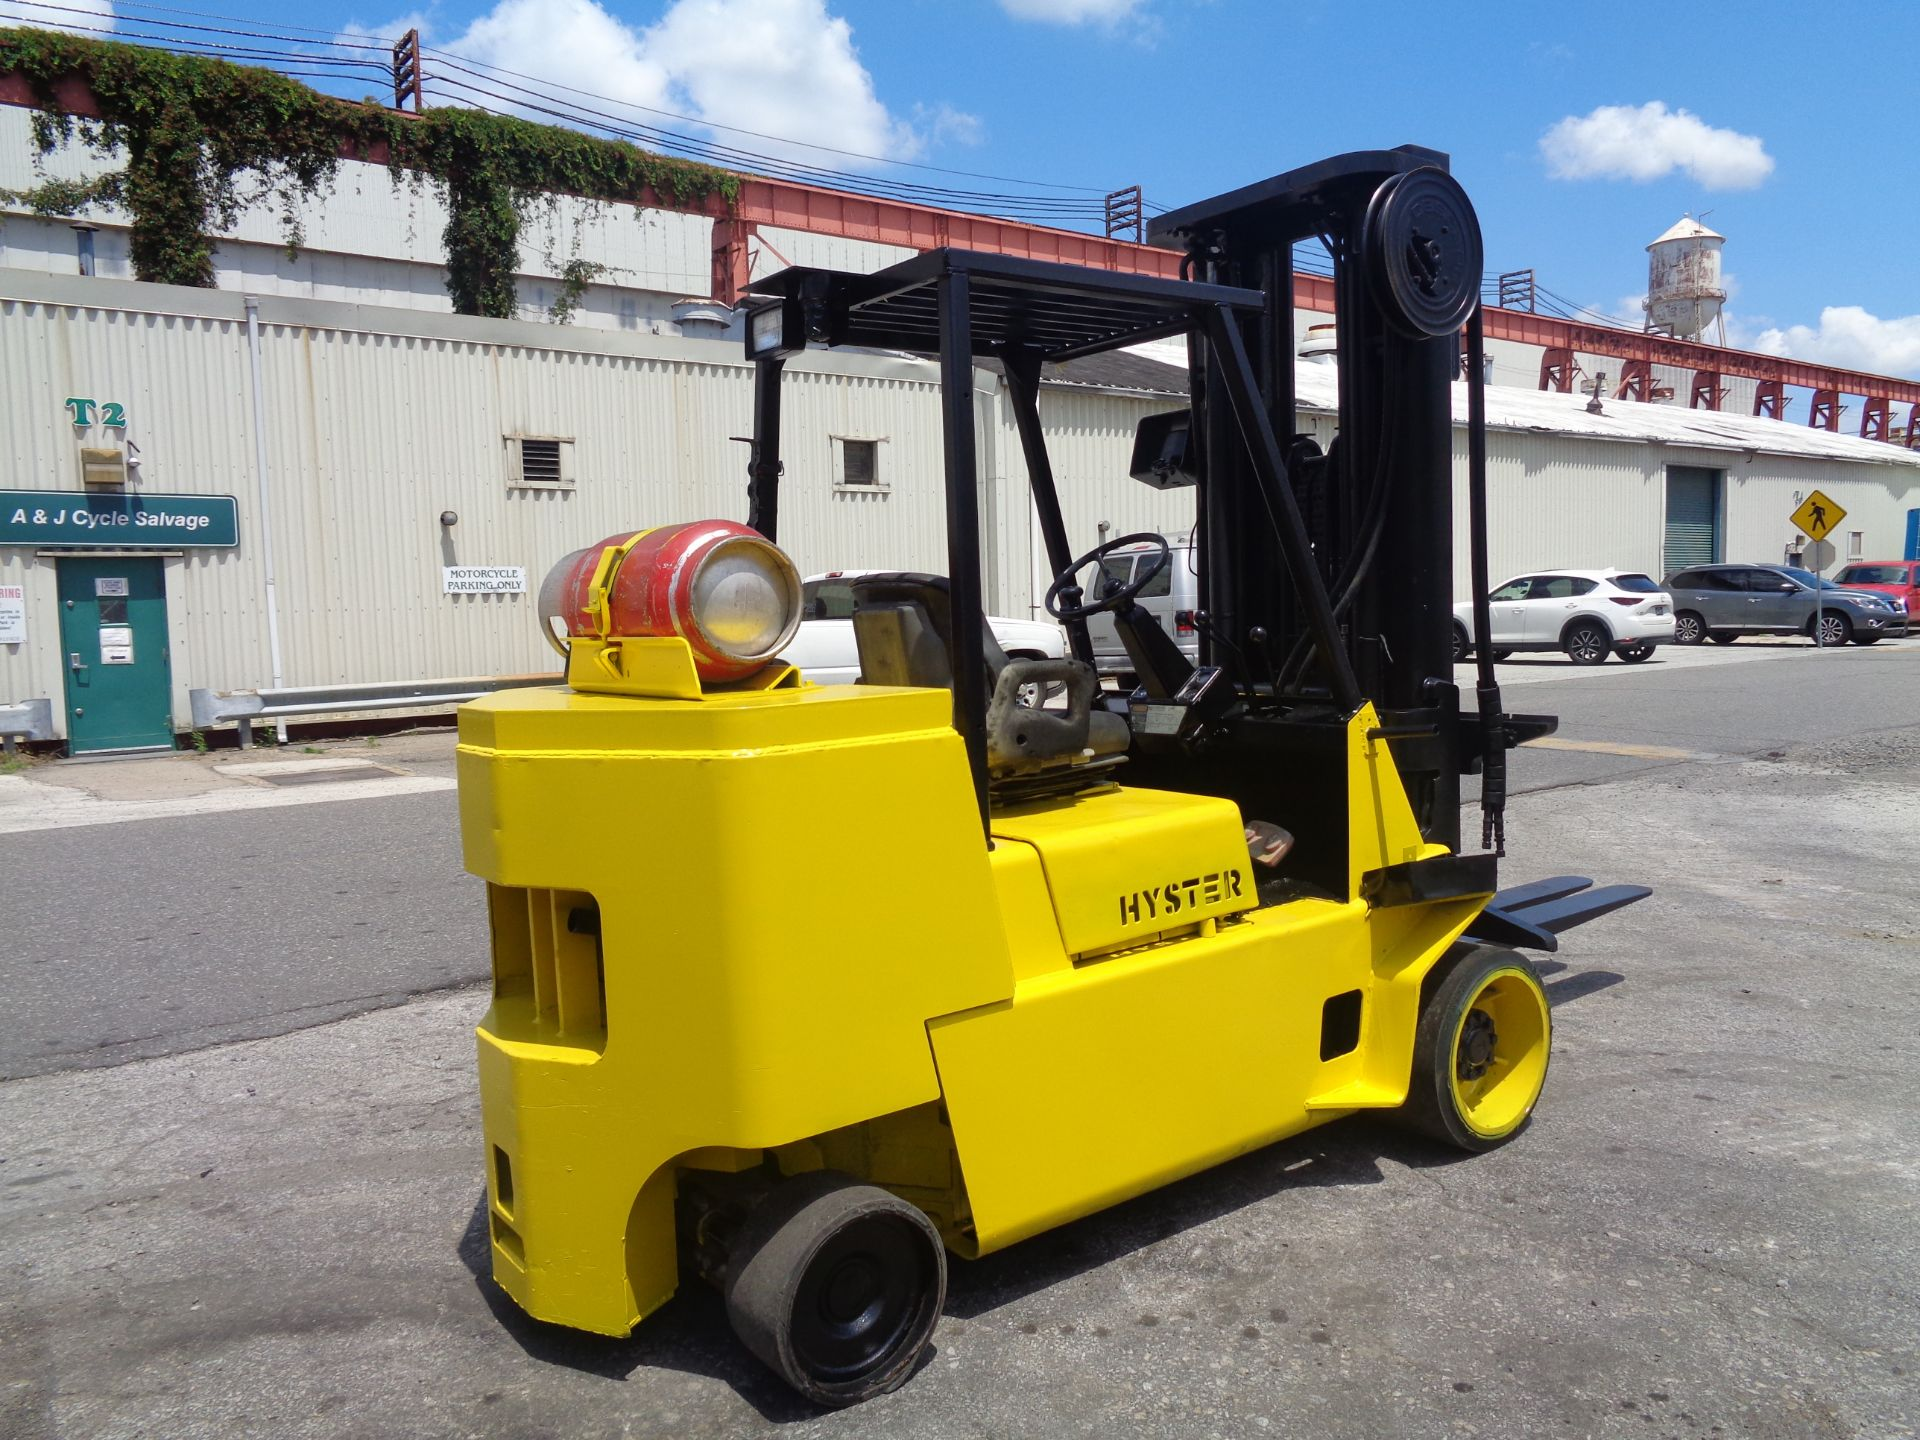 Hyster S120XL 12,000lb Forklift - Image 10 of 14